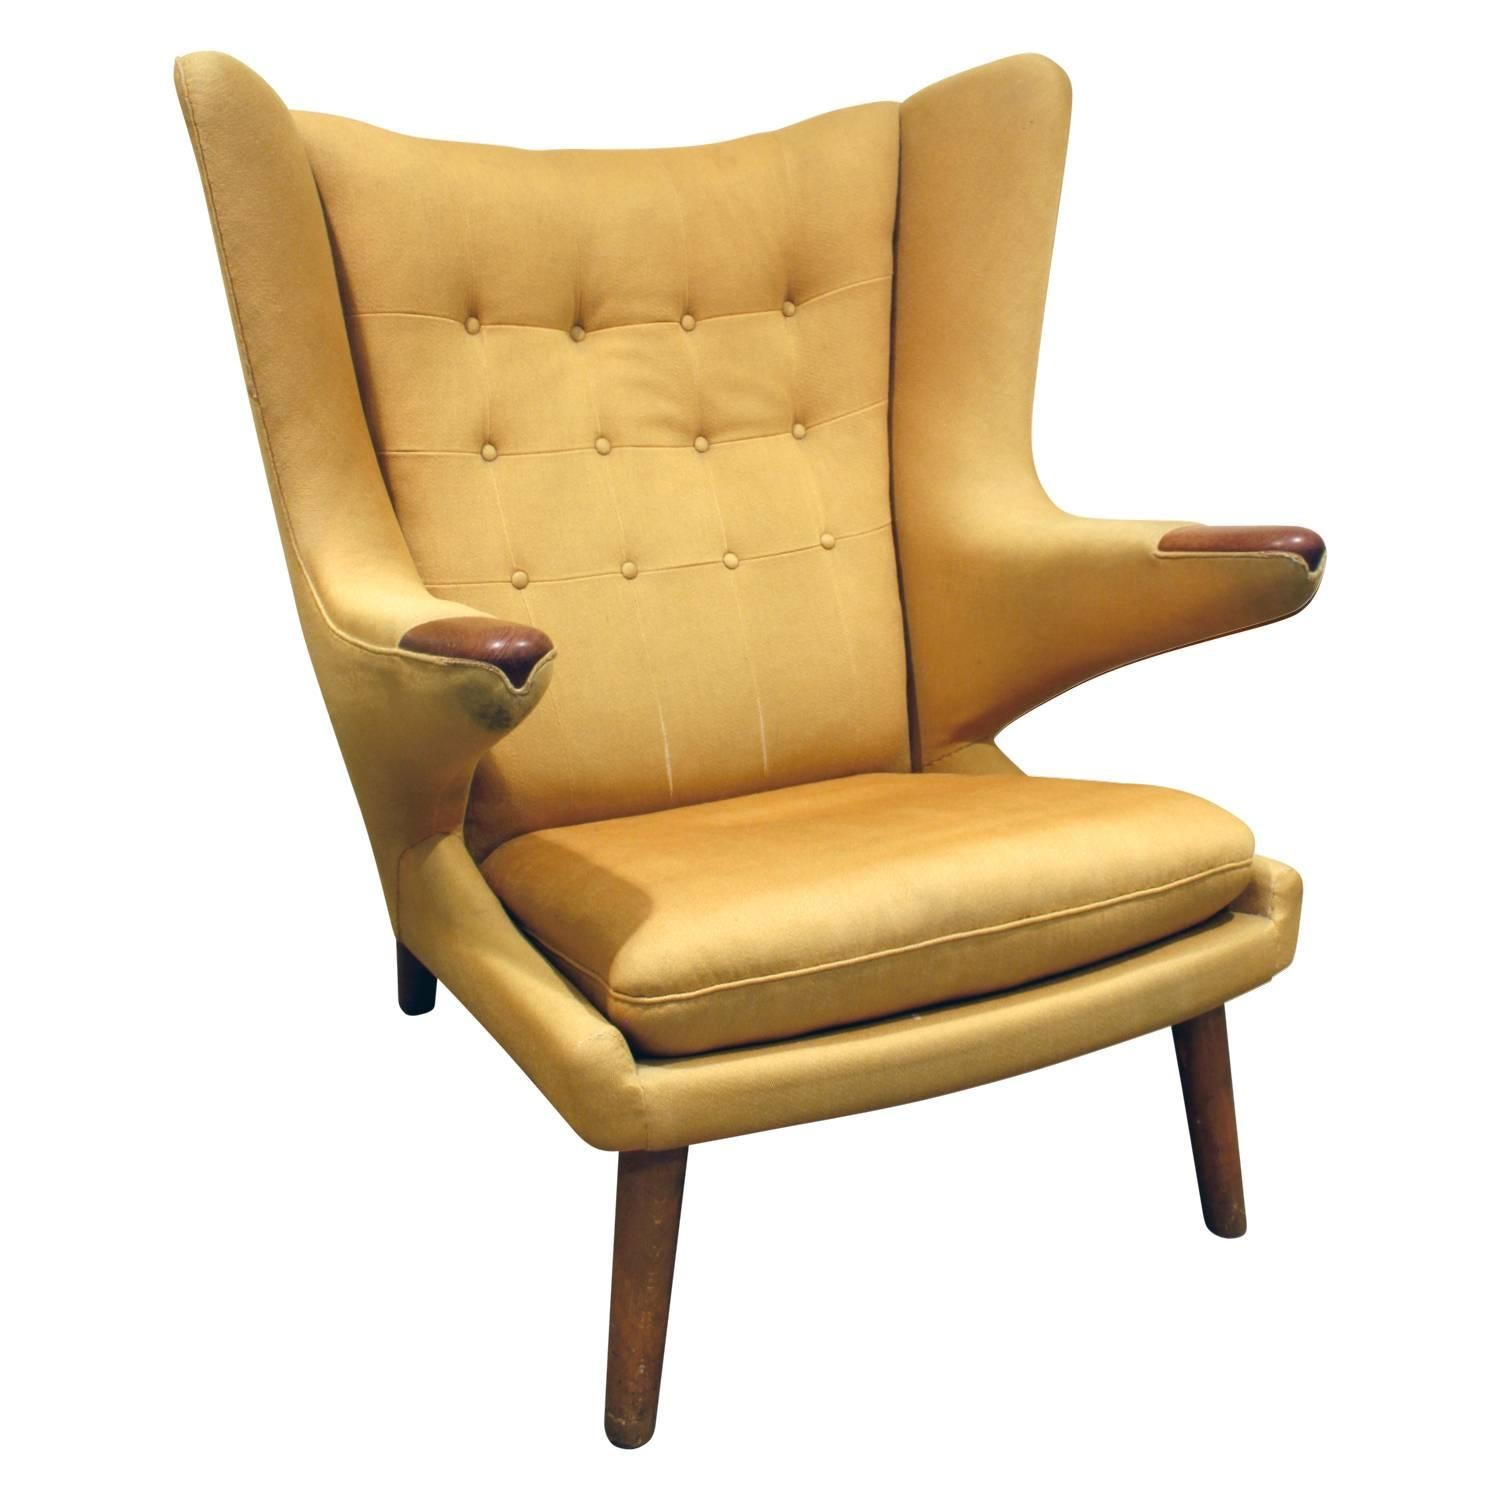 "Hans J Wegner ""Papa Bear Chair"" 1950s For Sale at 1stdibs"